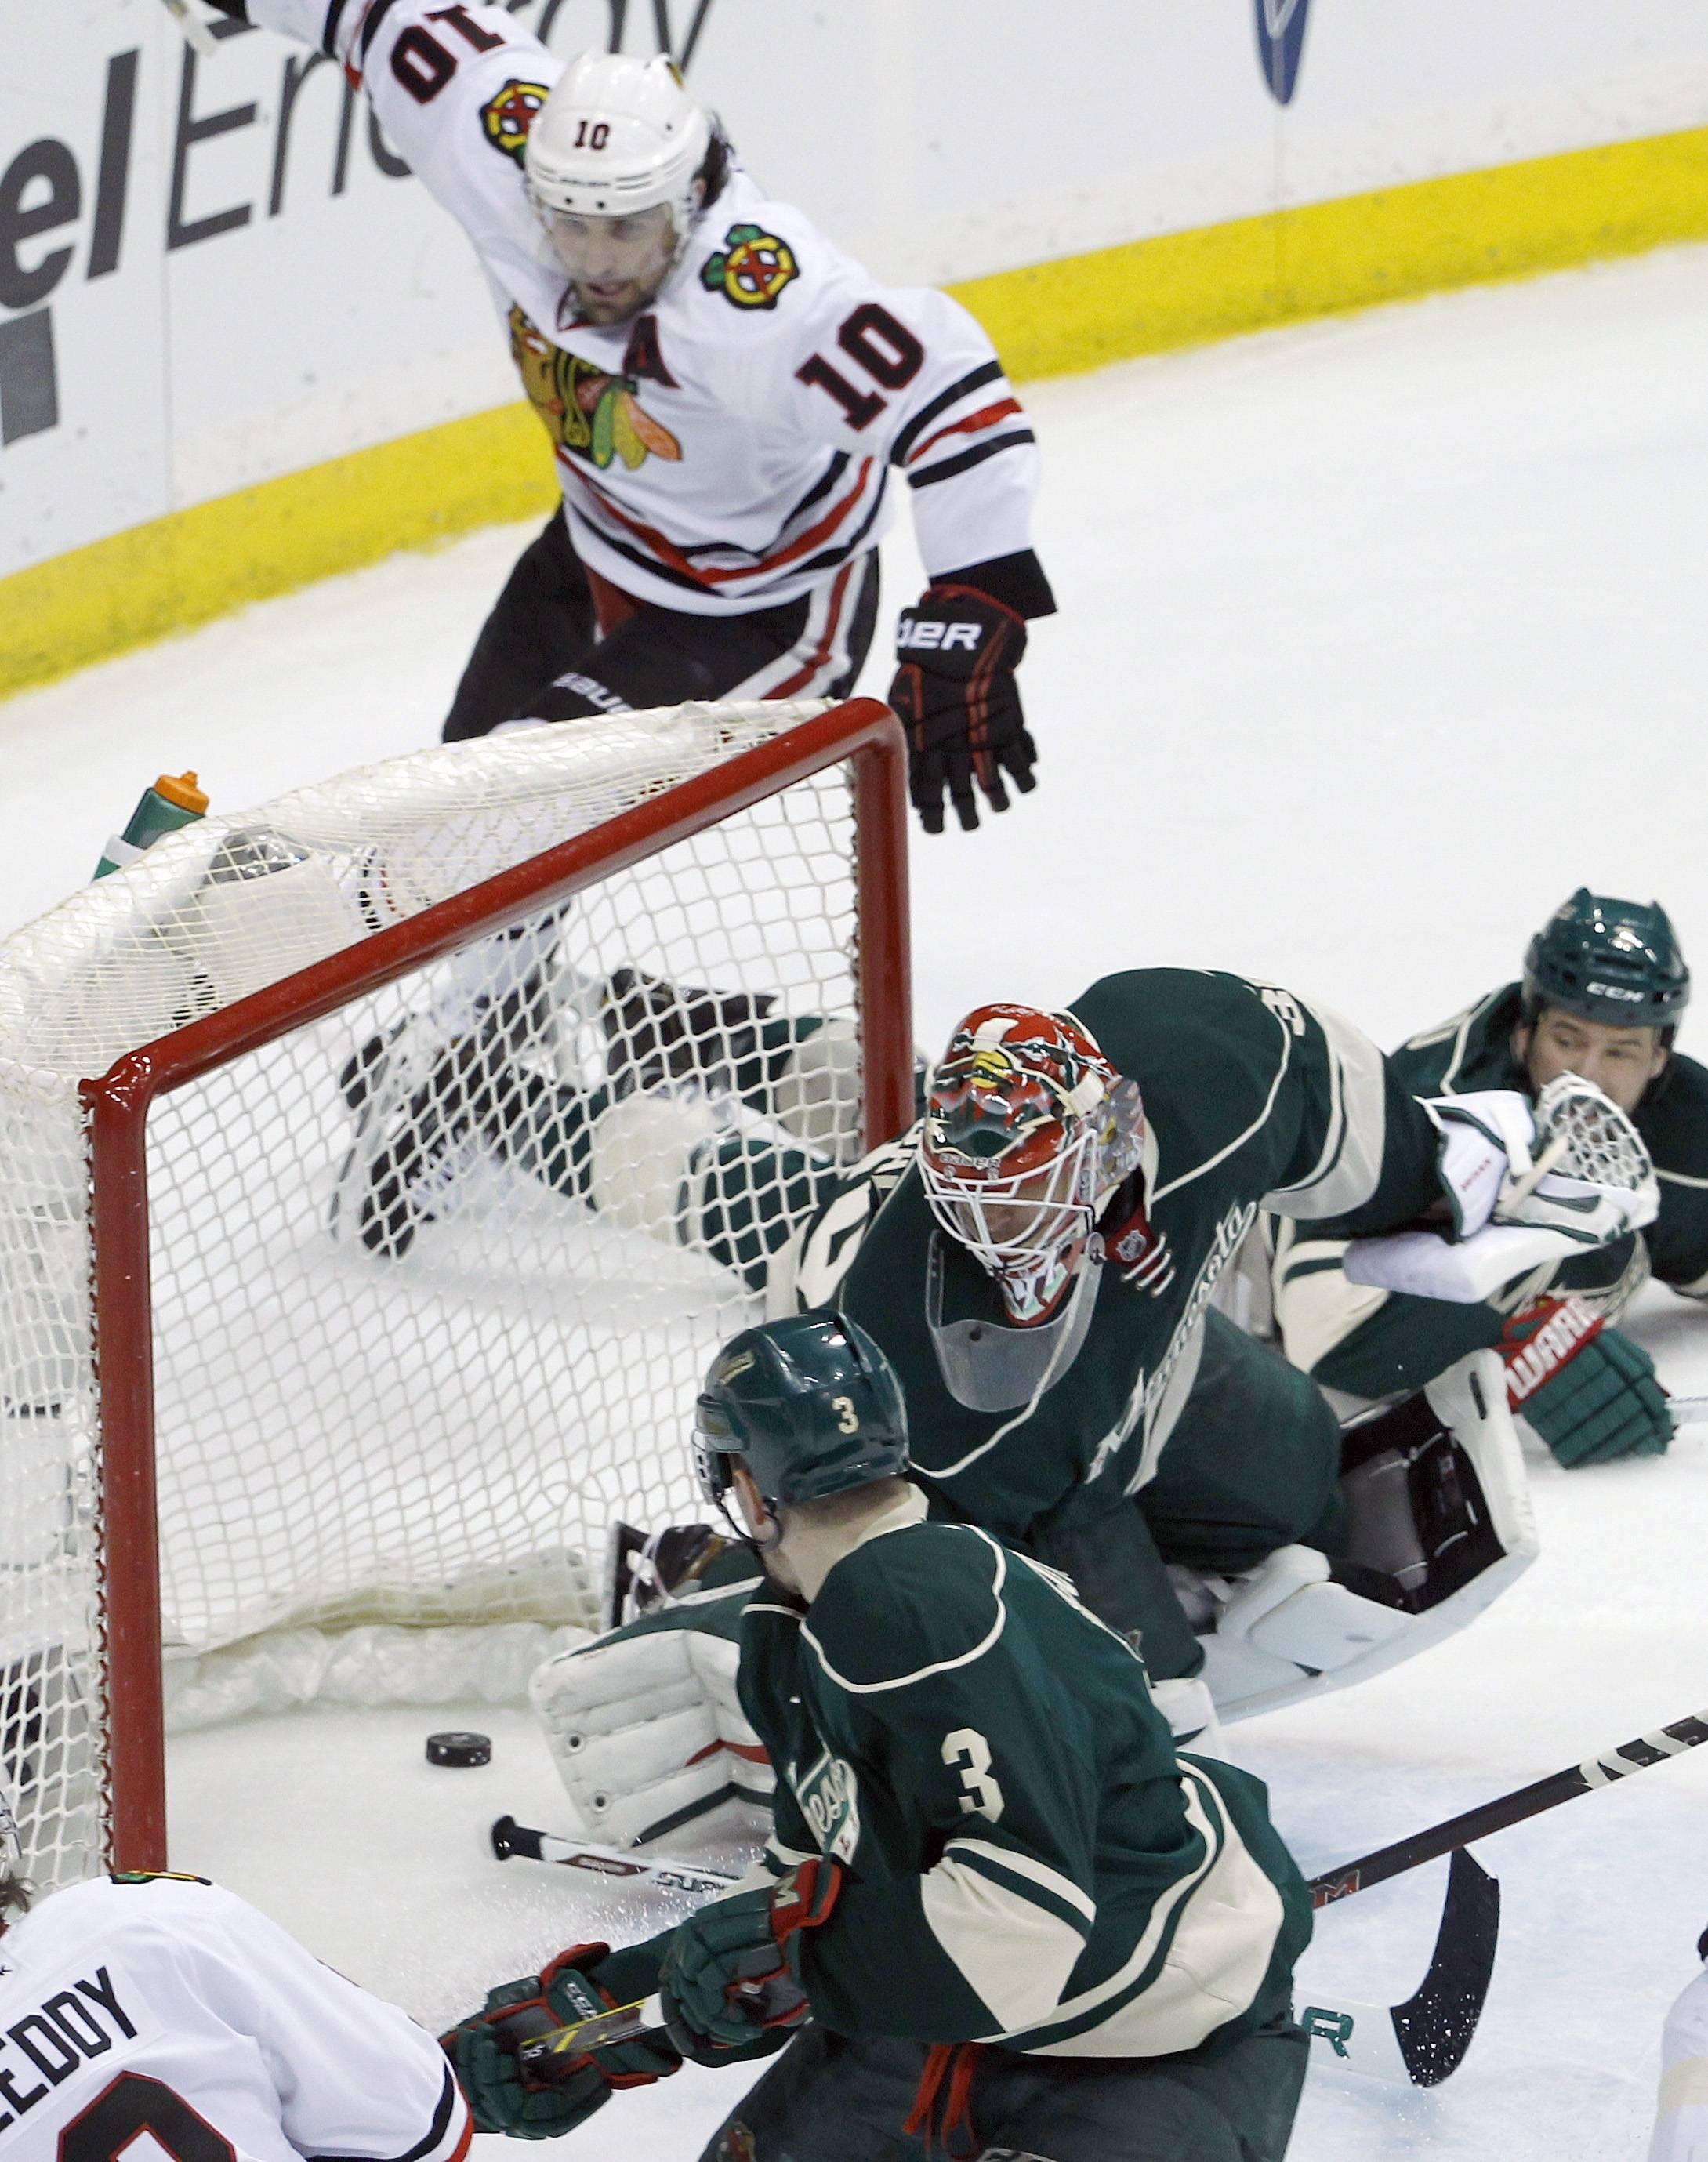 Minnesota Wild goalie Ilya Bryzgalov, center, and Wild center Charlie Coyle (3) are near as a shot by Chicago Blackhawks left wing Patrick Sharp (10) goes in during the first period of Game 4 of an NHL hockey second-round playoff series in St. Paul, Minn., Friday, May 9, 2014.